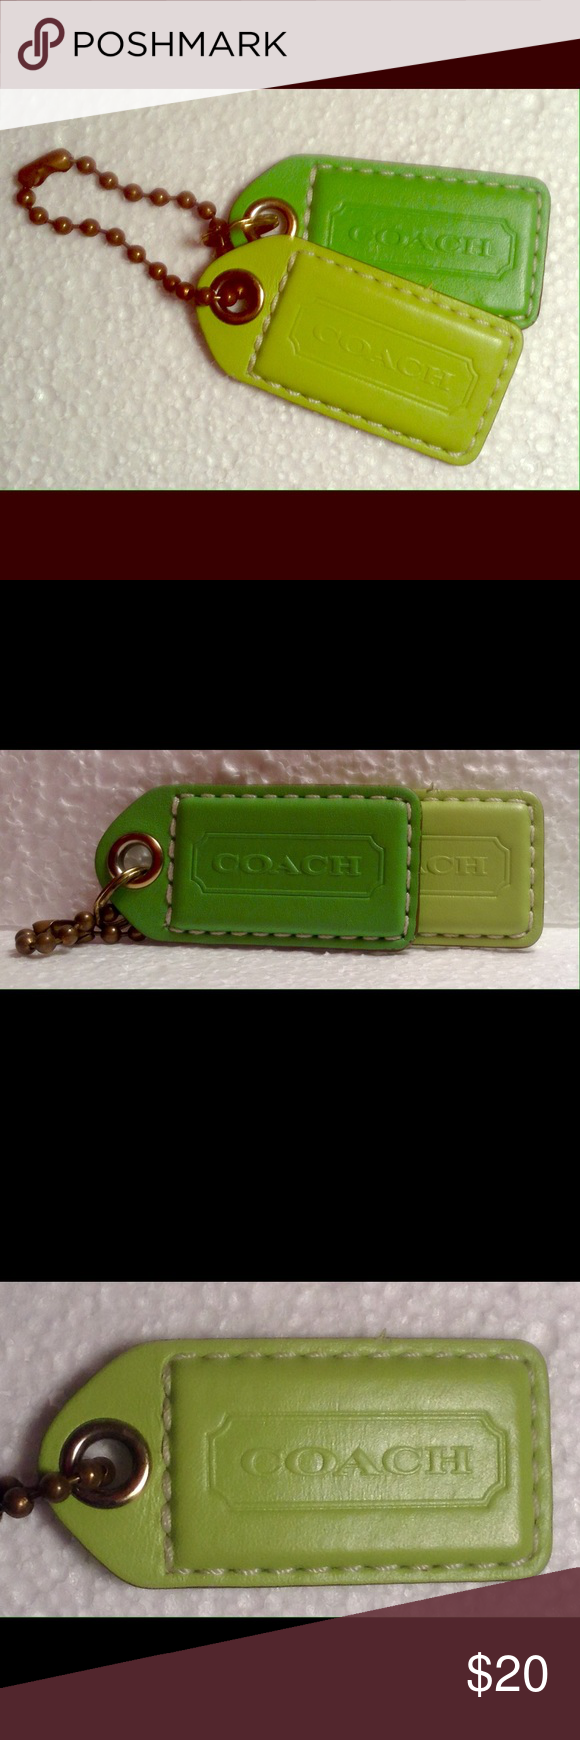 Coach tags Authentic coach purse tags Coach Other